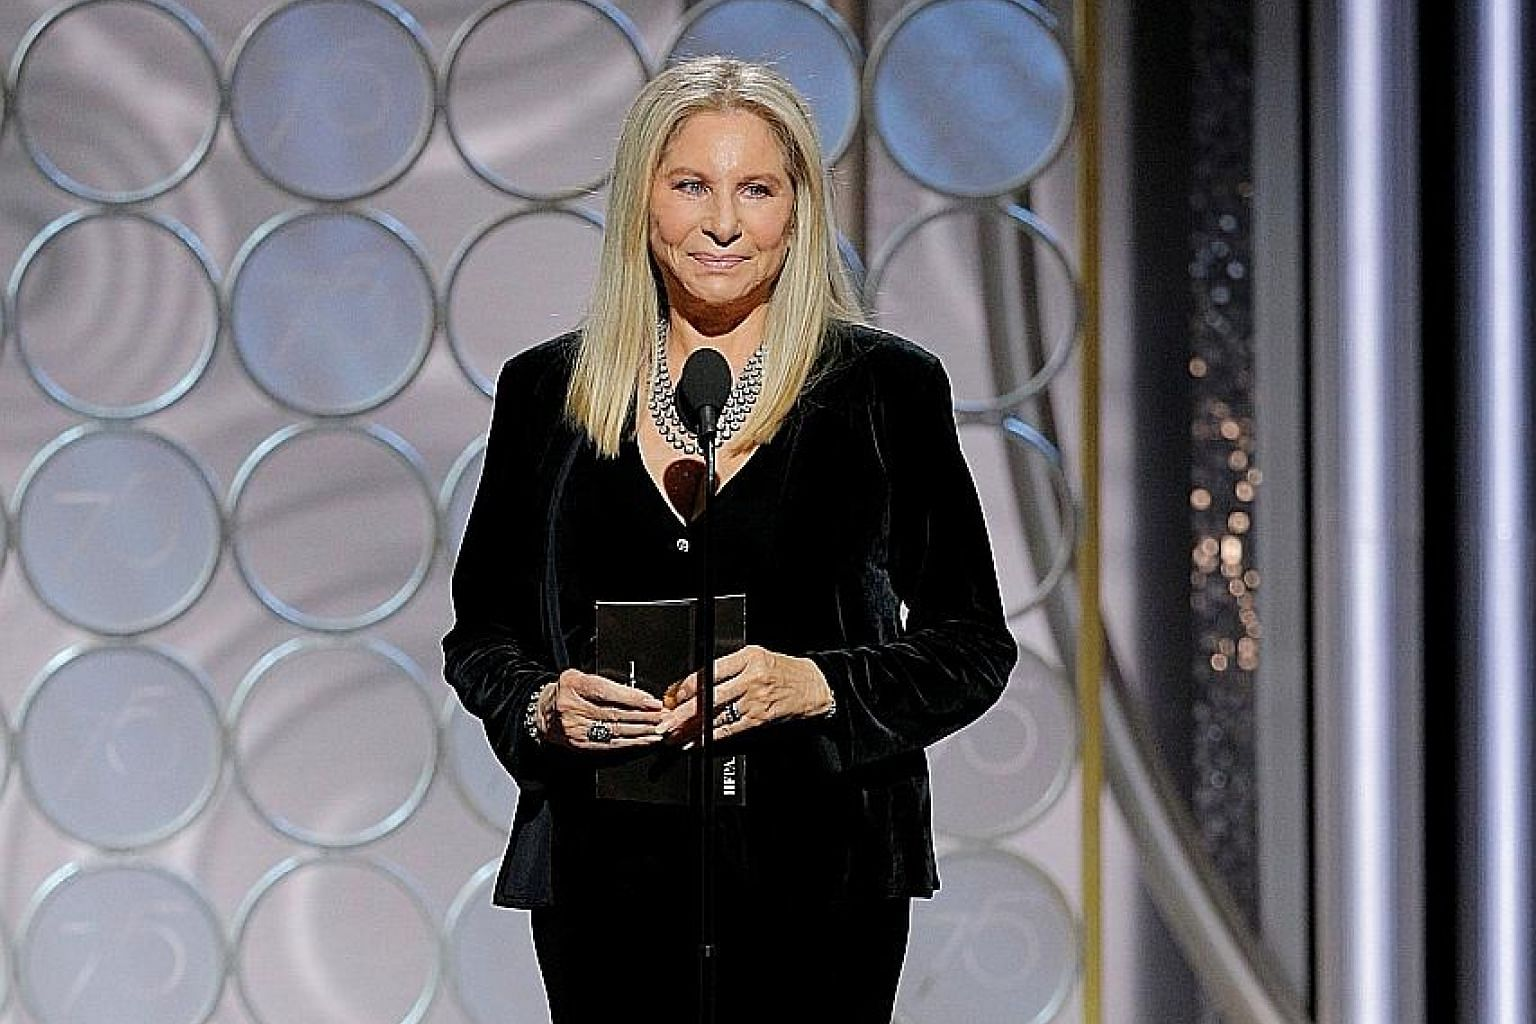 Singer Barbra Streisand has two new pups from her dog, which she had cloned, after its death last year.